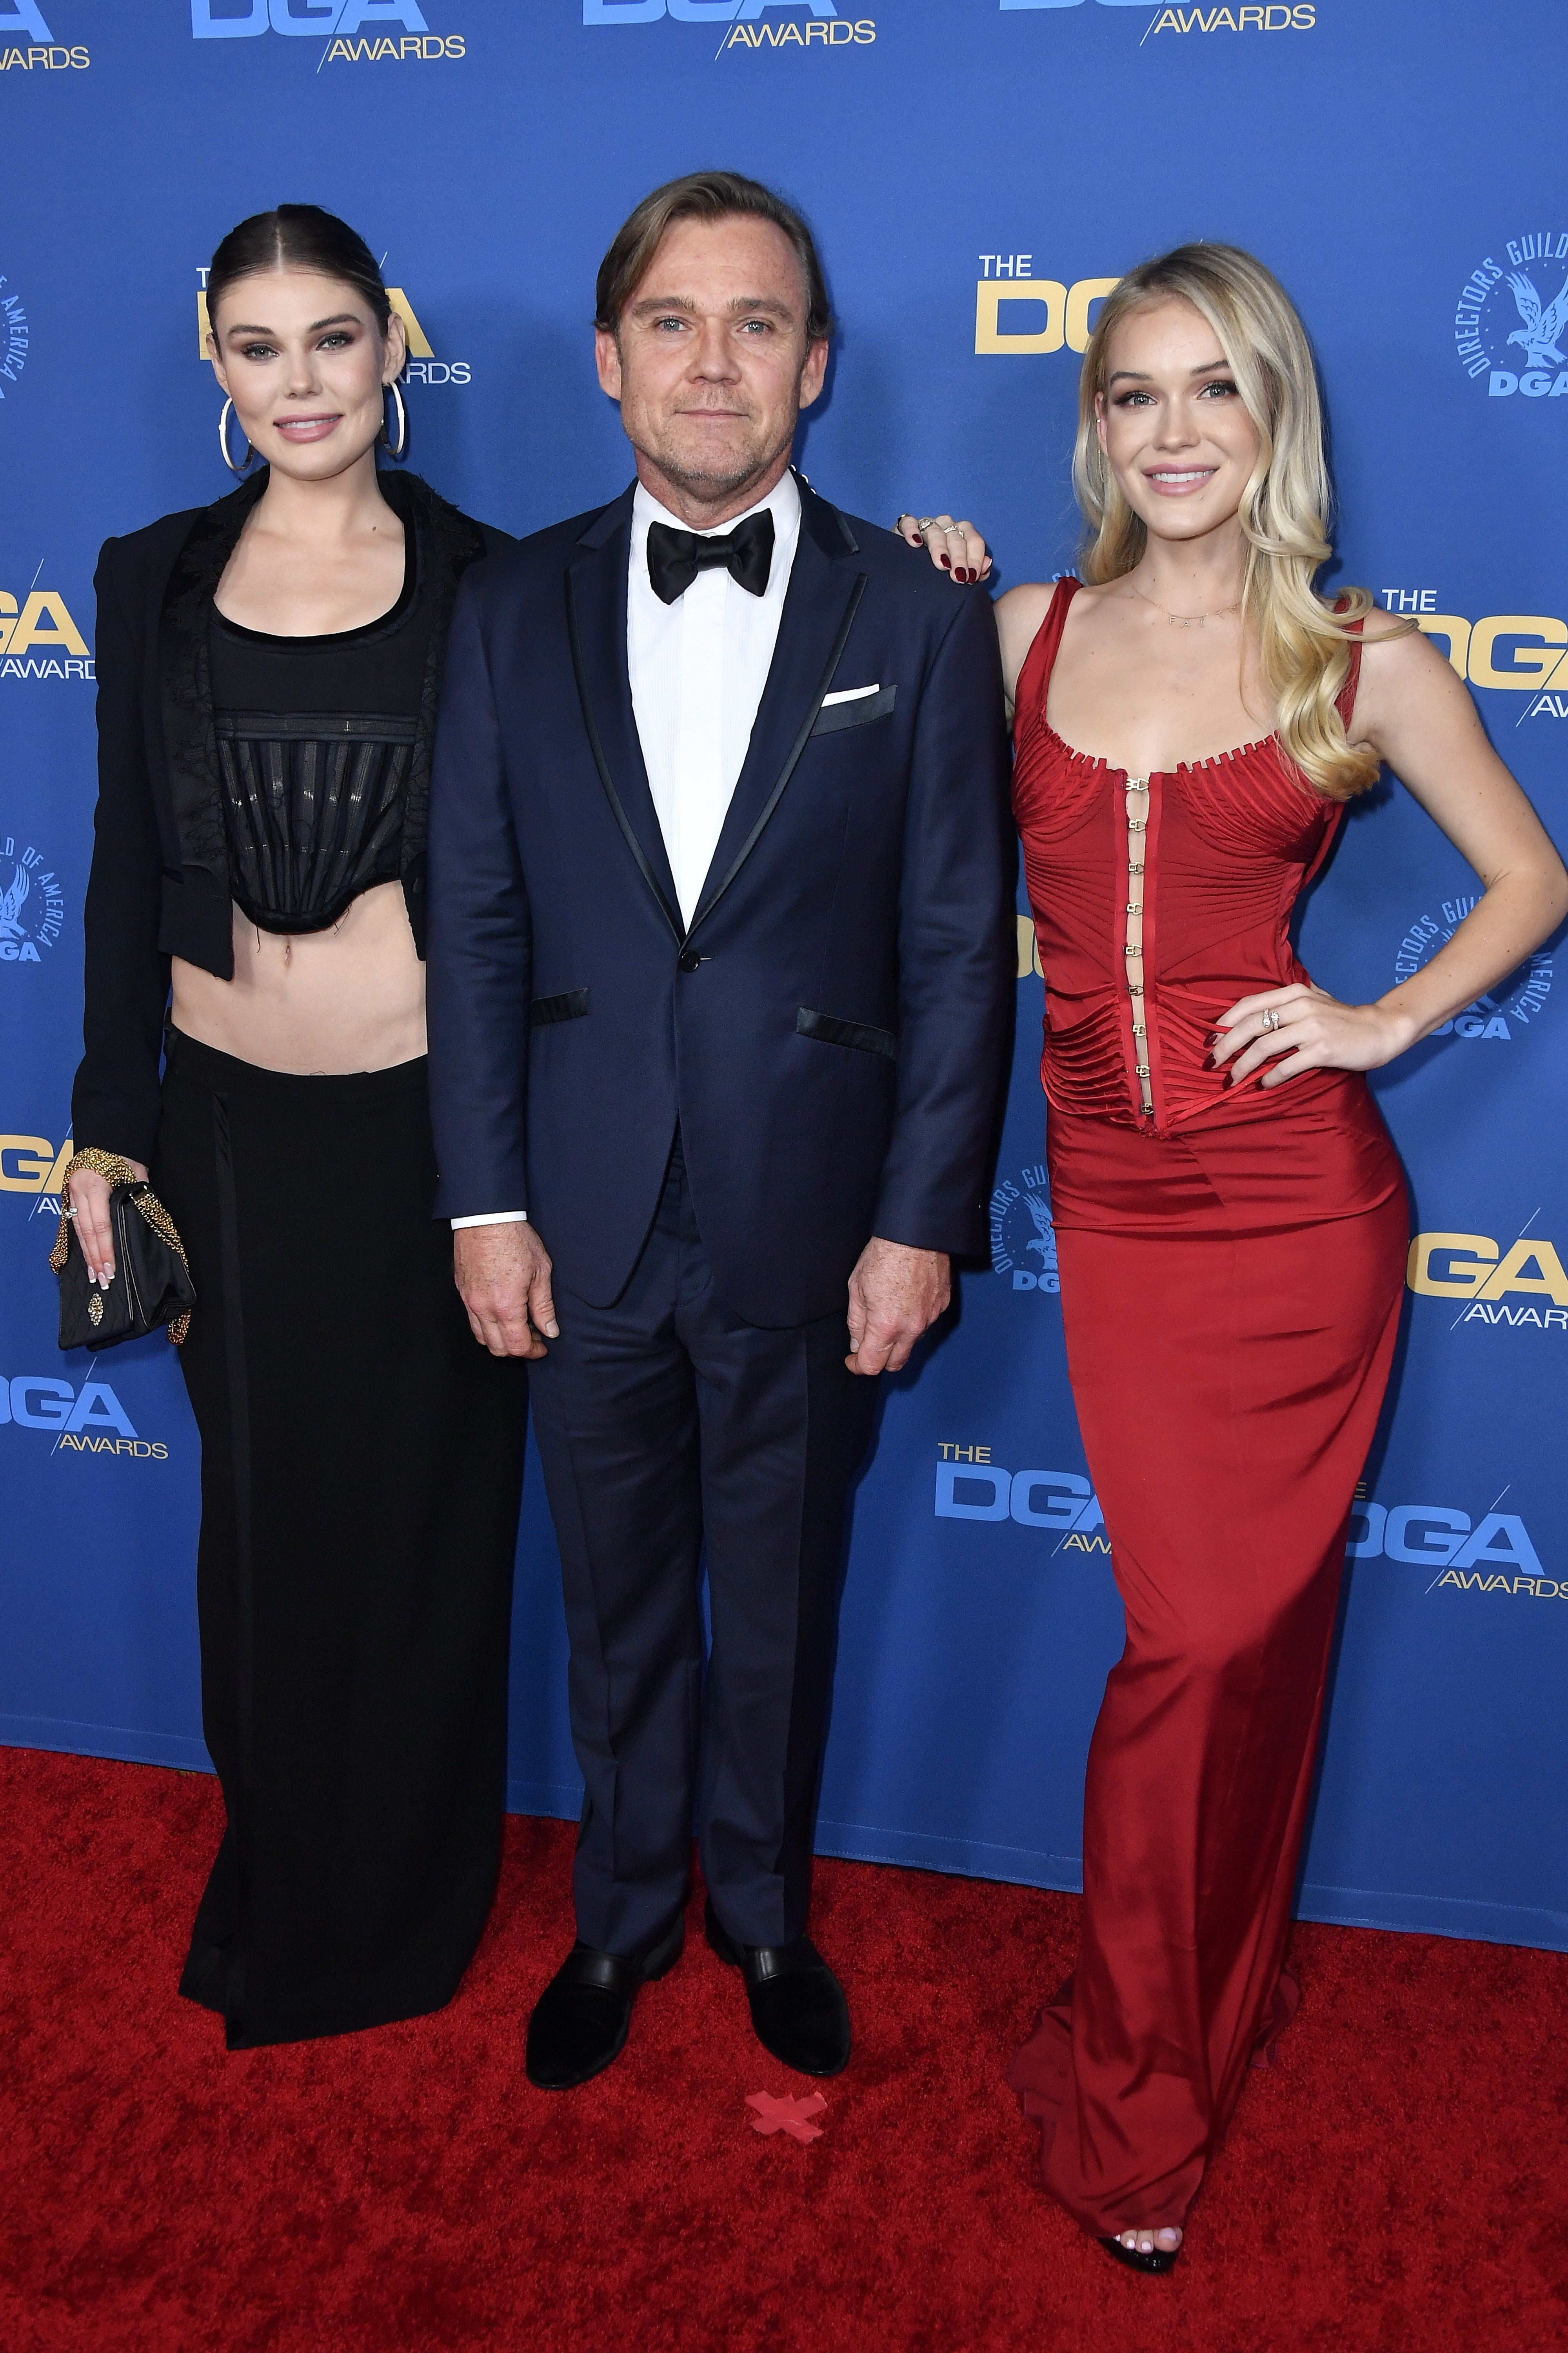 Cambrie Schroder, Ricky Schroder, and Faith Anne Schroder arrive for the 72nd Annual Directors Guild Of America Awards at The Ritz Carlton on January 25, 2020 | Photo: Getty Images